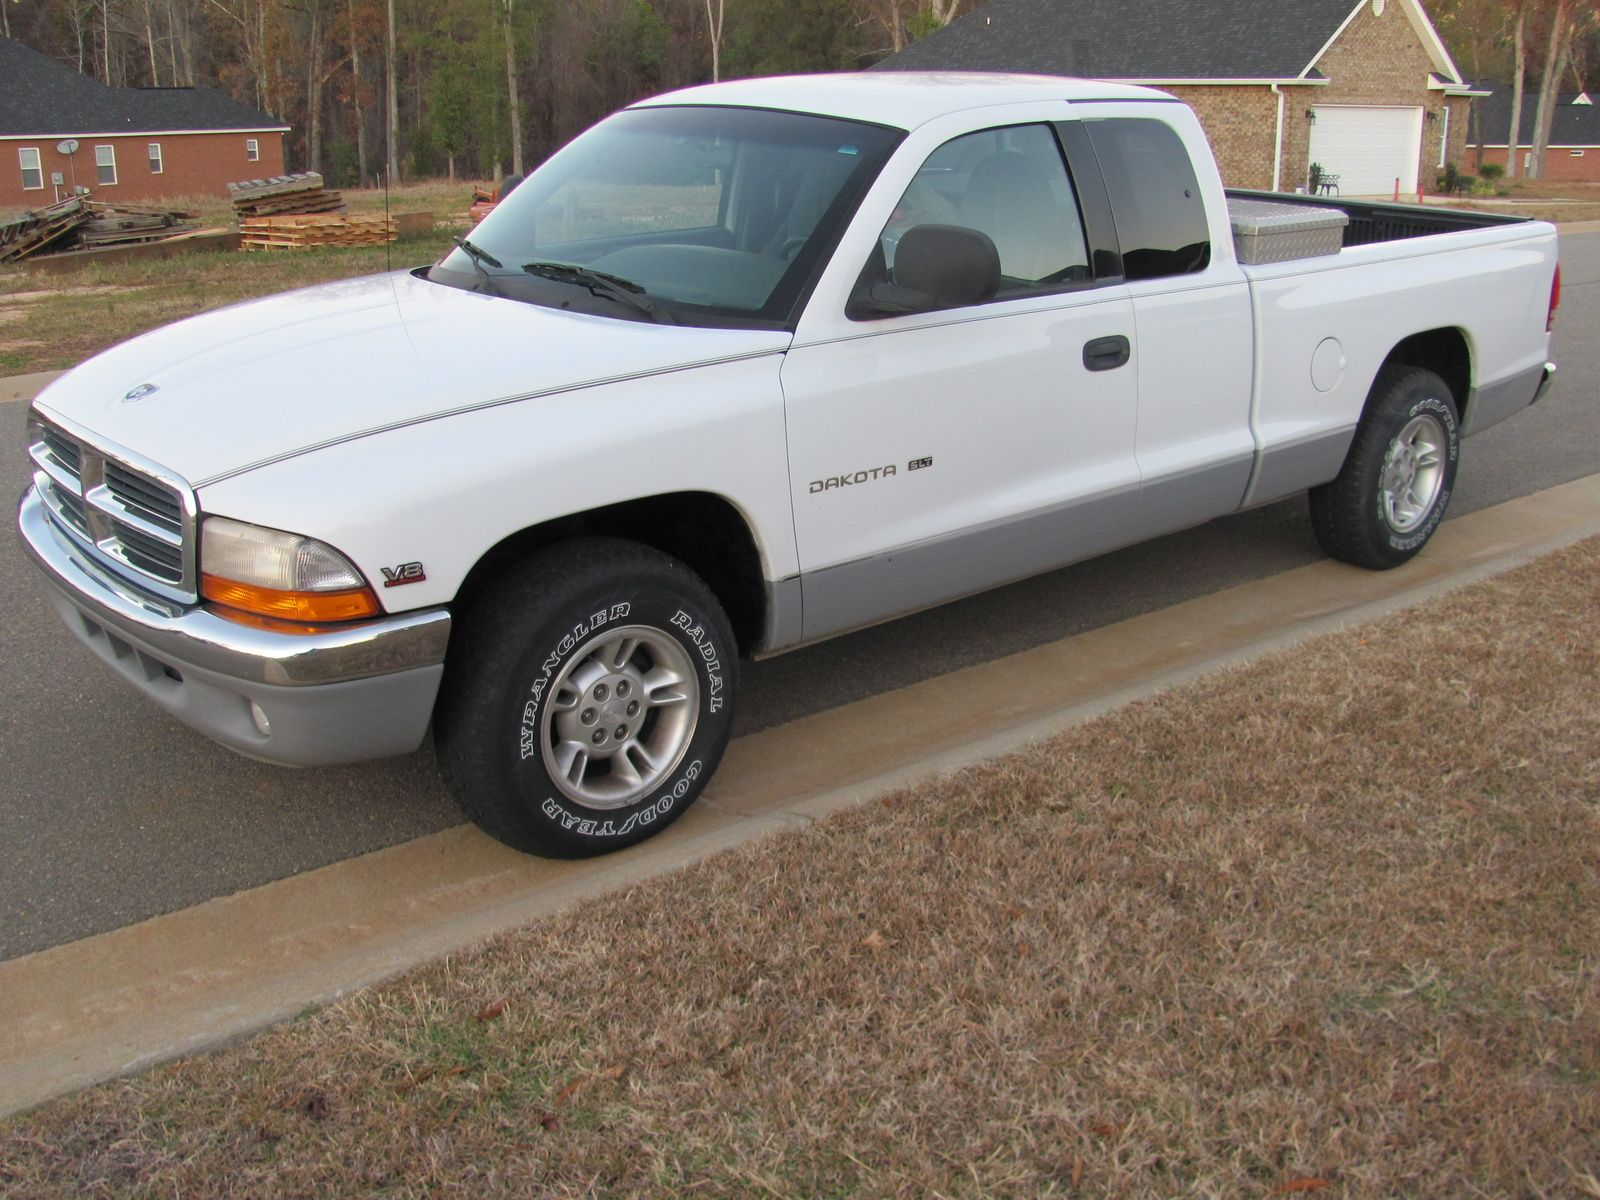 1999 dodge dakota first vehicle bought with my wife